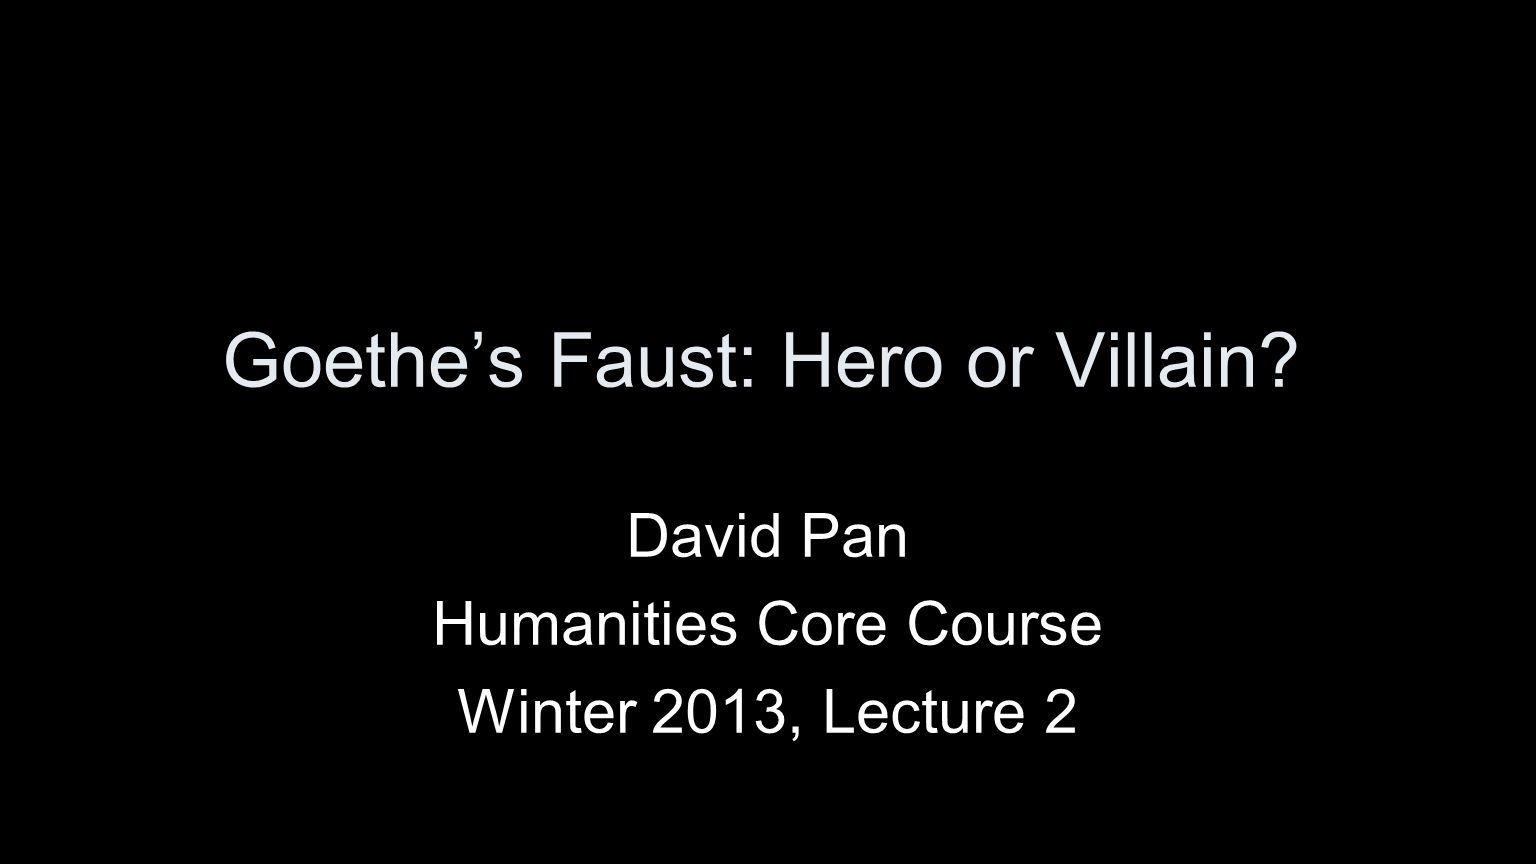 Goethe's Faust: Hero or Villain? David Pan Humanities Core Course Winter 2013, Lecture 2